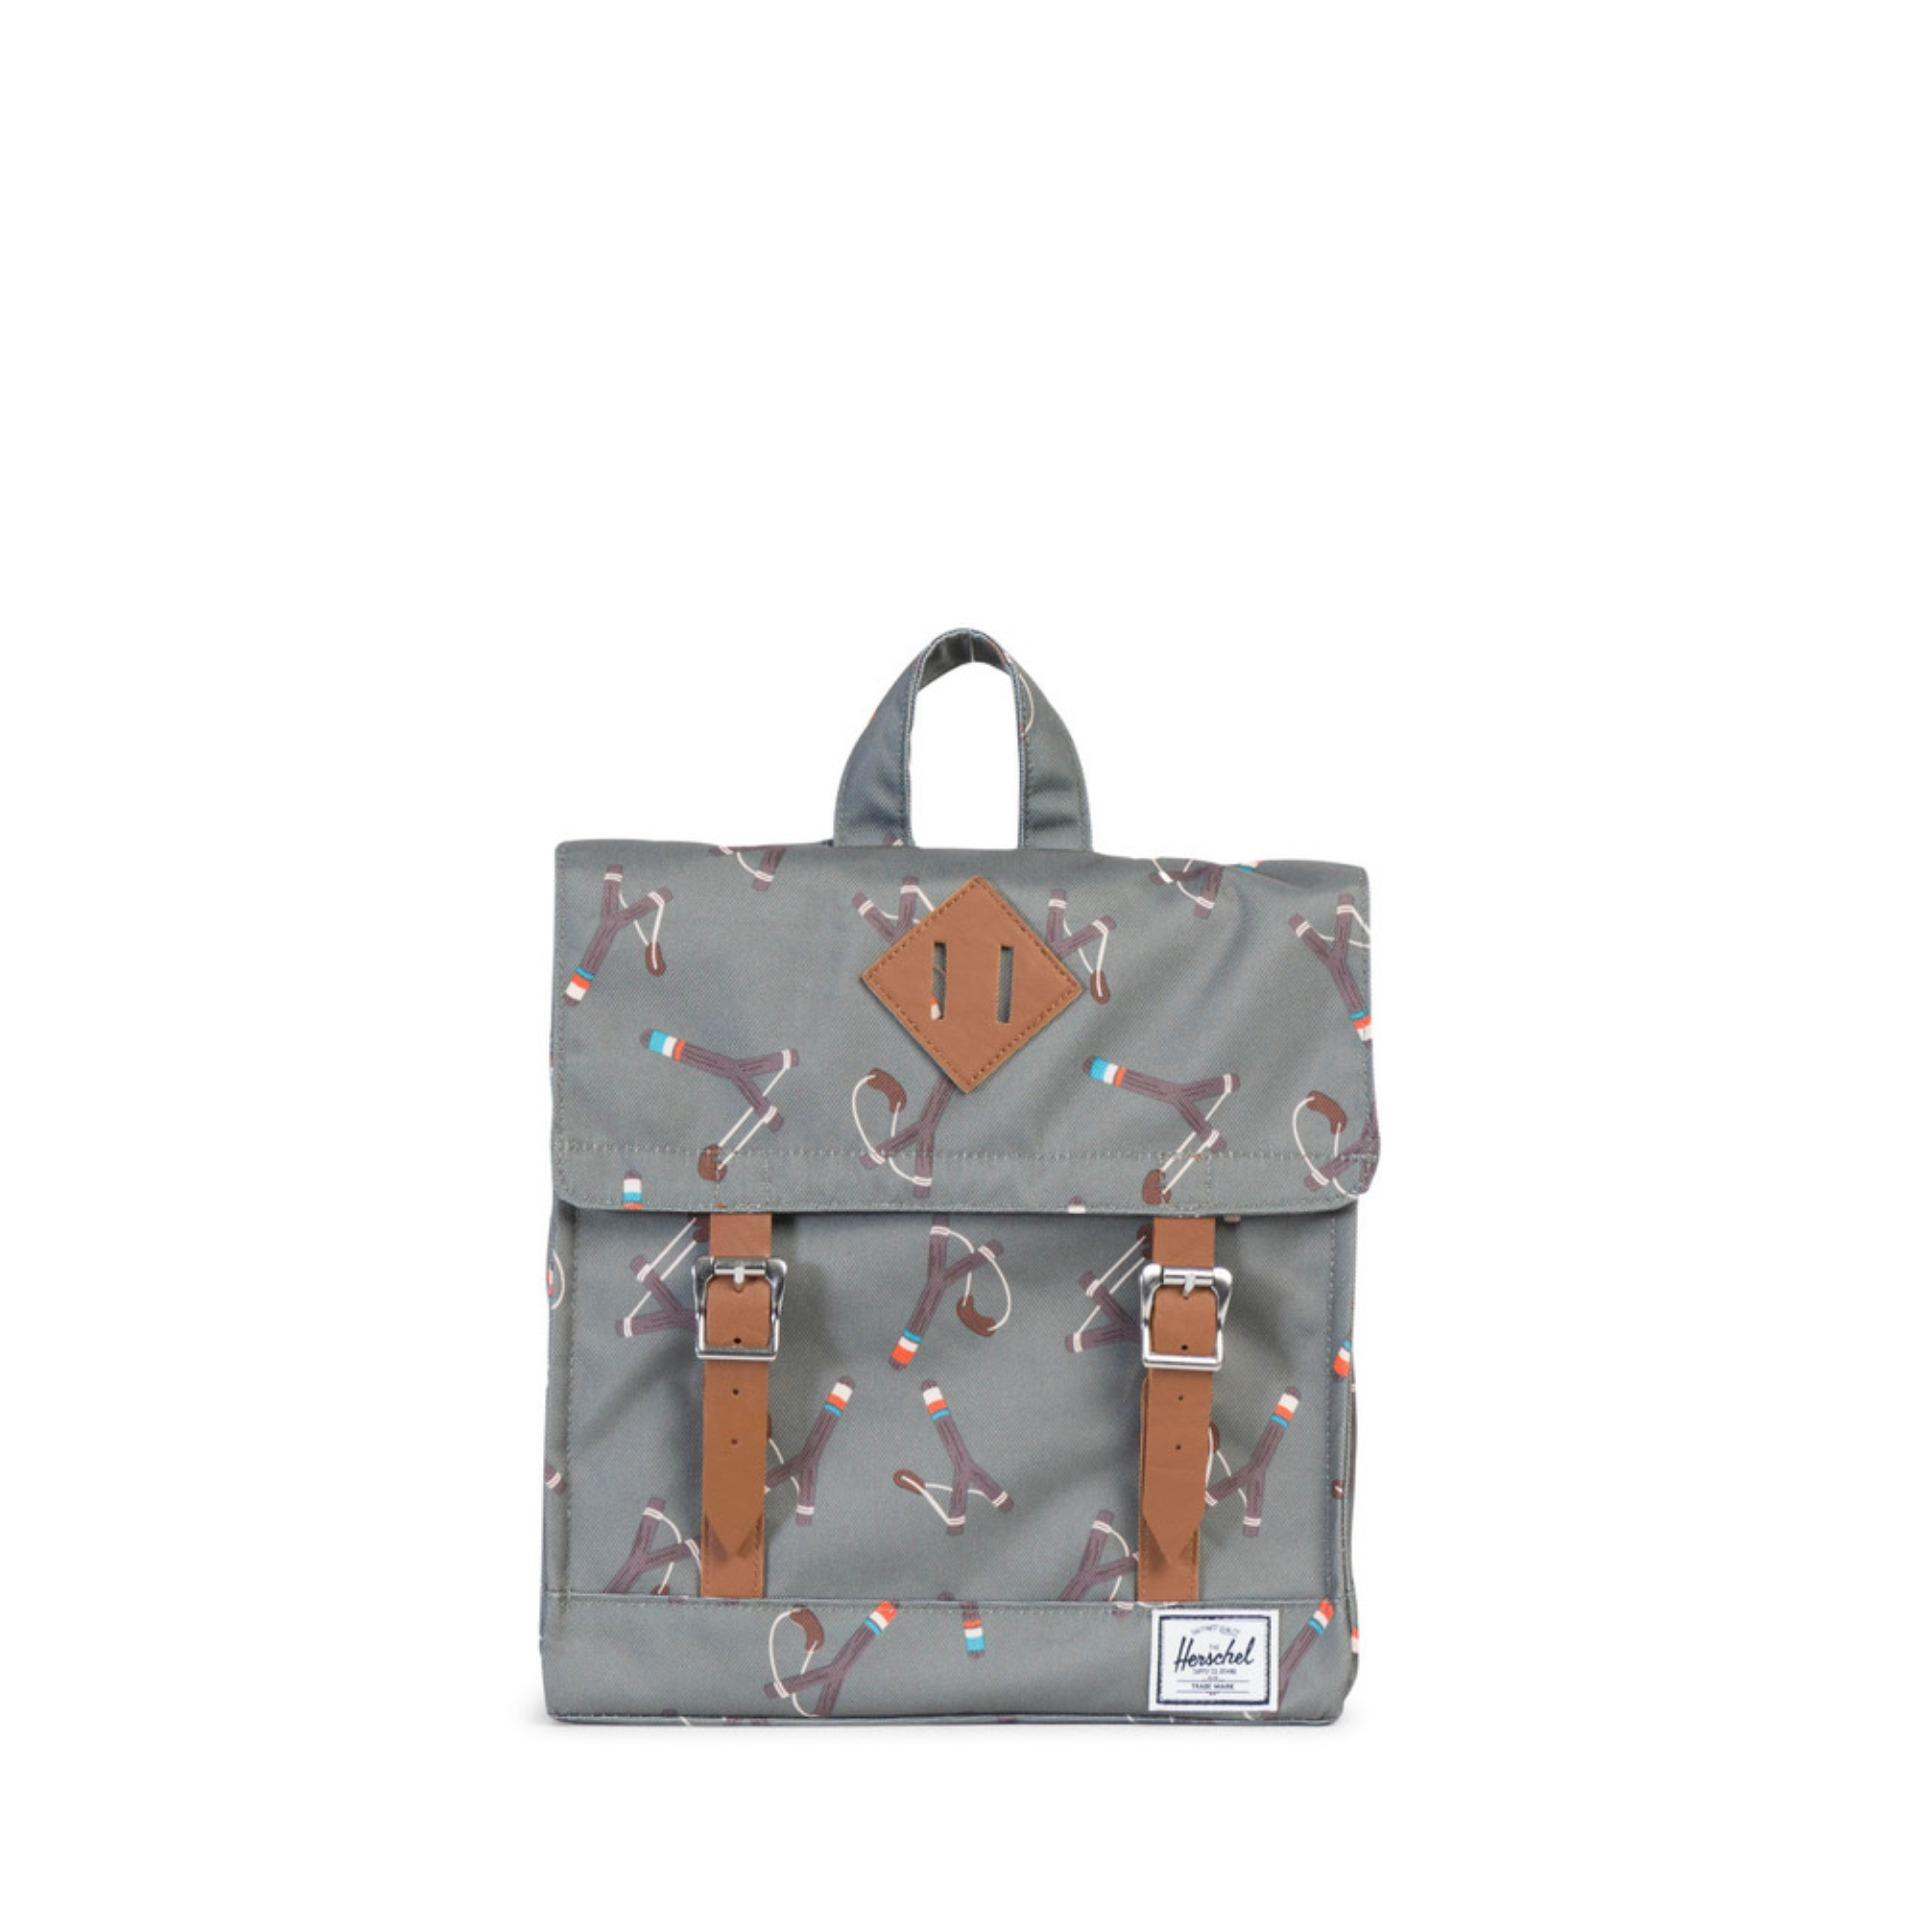 HERSCHEL SURVEY KID - Sticks & Stones/Tan Synthetic Leather